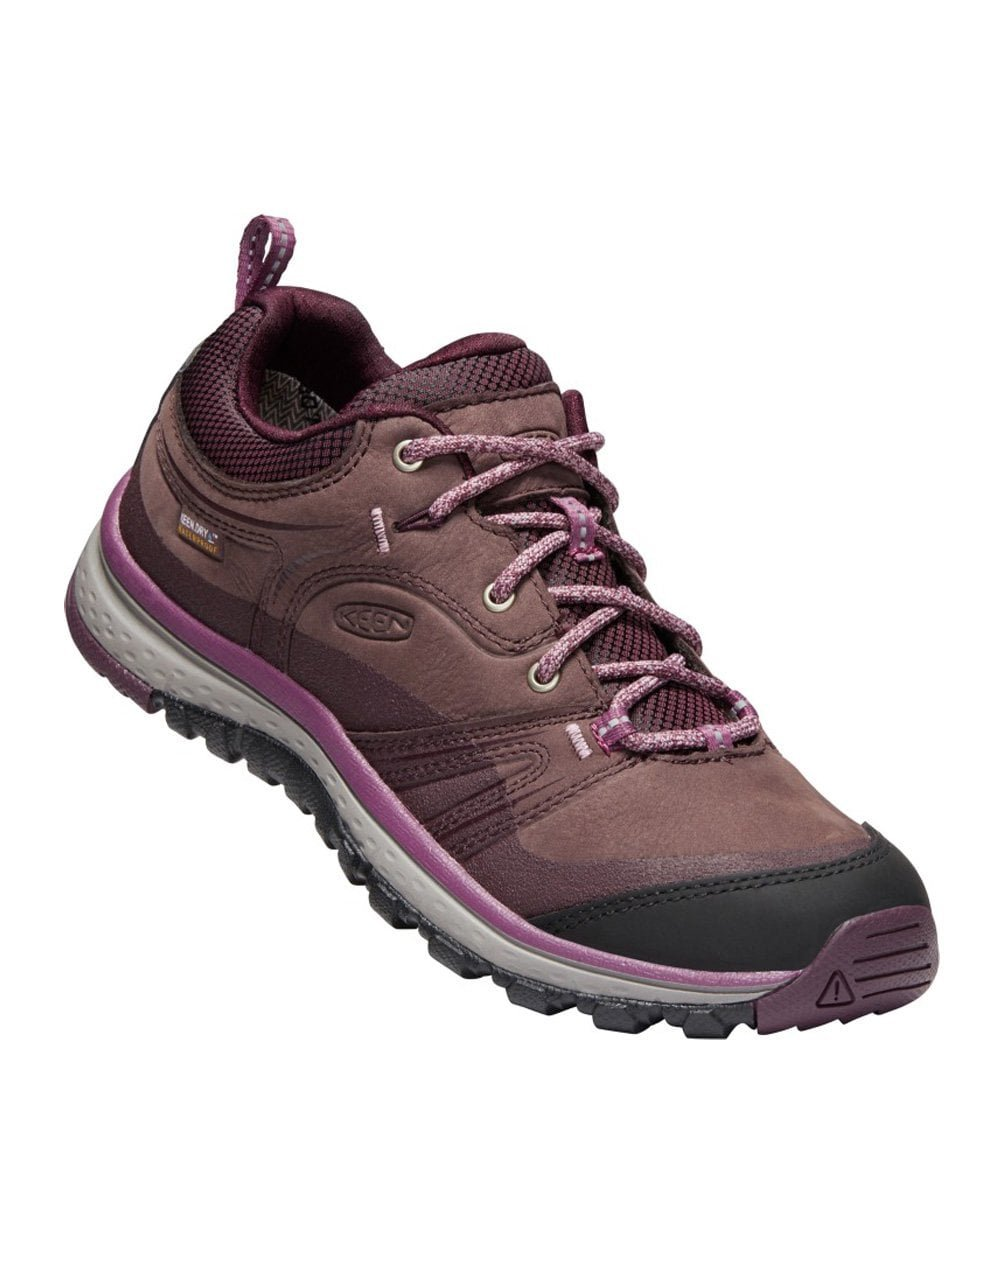 KEEN Women's Terradora Leather Waterproof Hiking Boot B077KHM2BK 10 B(M) US|Peppercorn/Wine Tasting